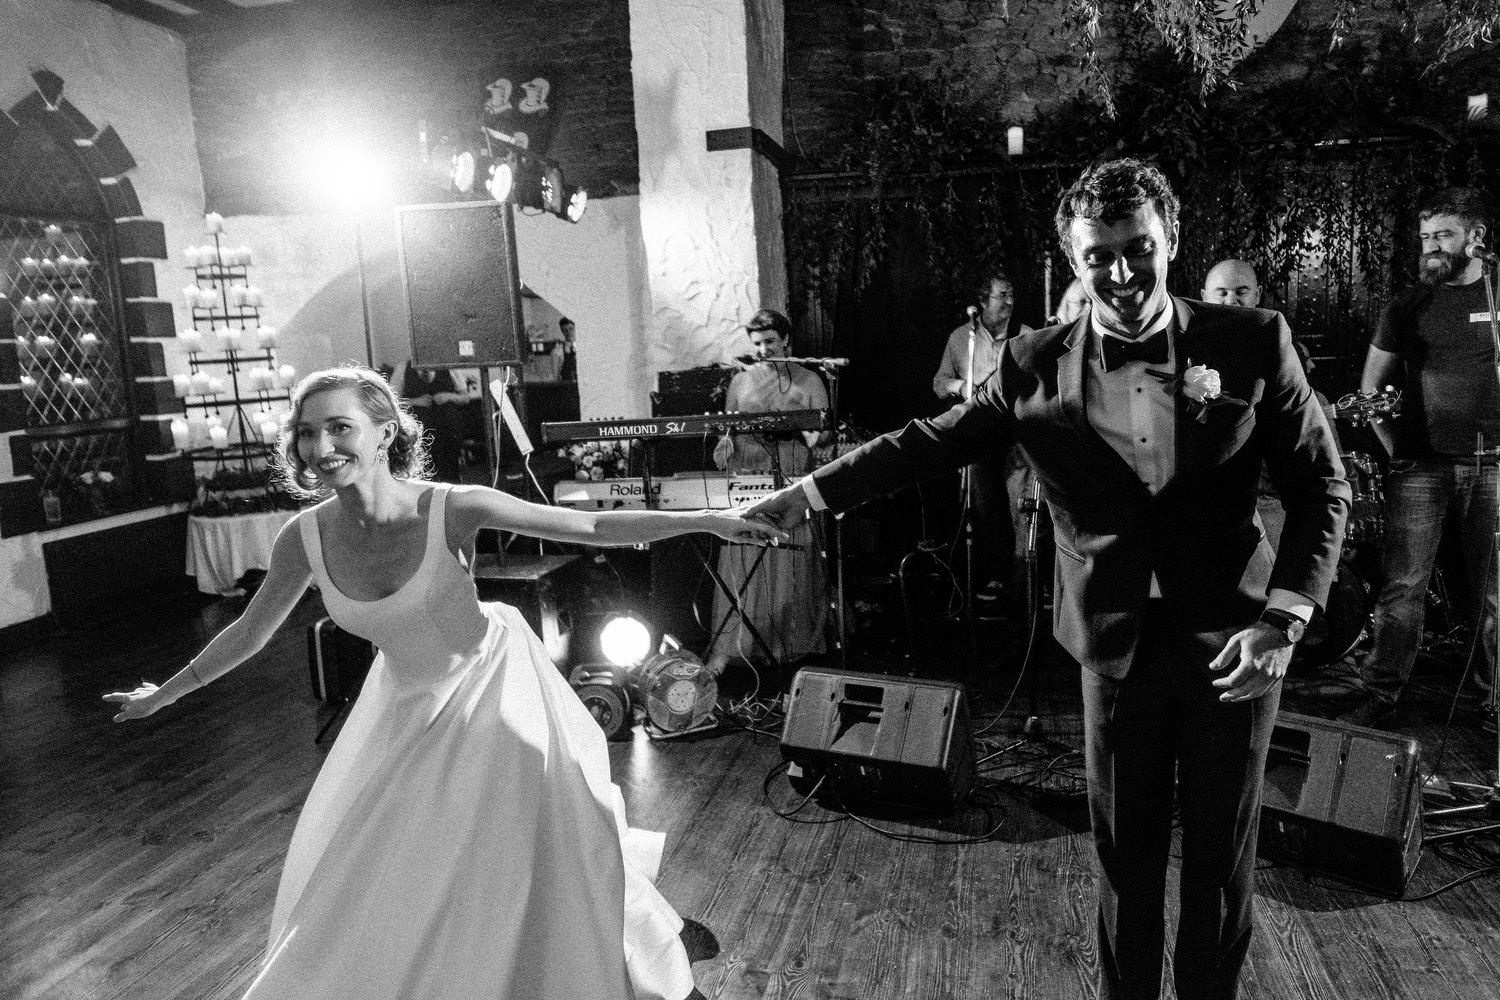 000000000000000000000204_bride_style_vintage_photography_david_mcclelland_ireland_castle_hollywood_kinnity_wedding_photographer_fujifilm